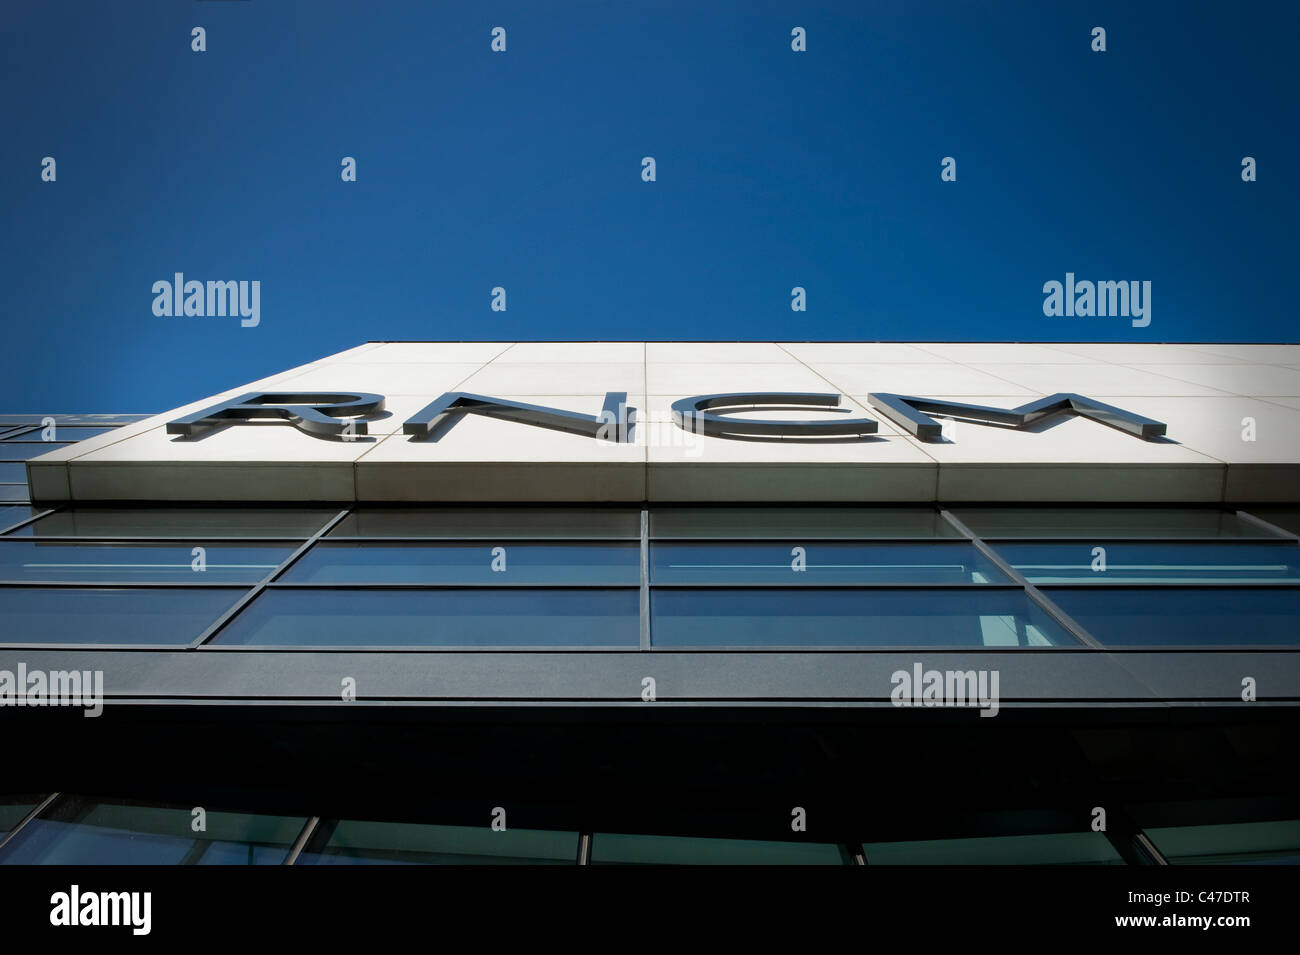 RNCM logo letters on the side of the Royal Northern College of Music building on Oxford Road, Manchester (Editorial - Stock Image